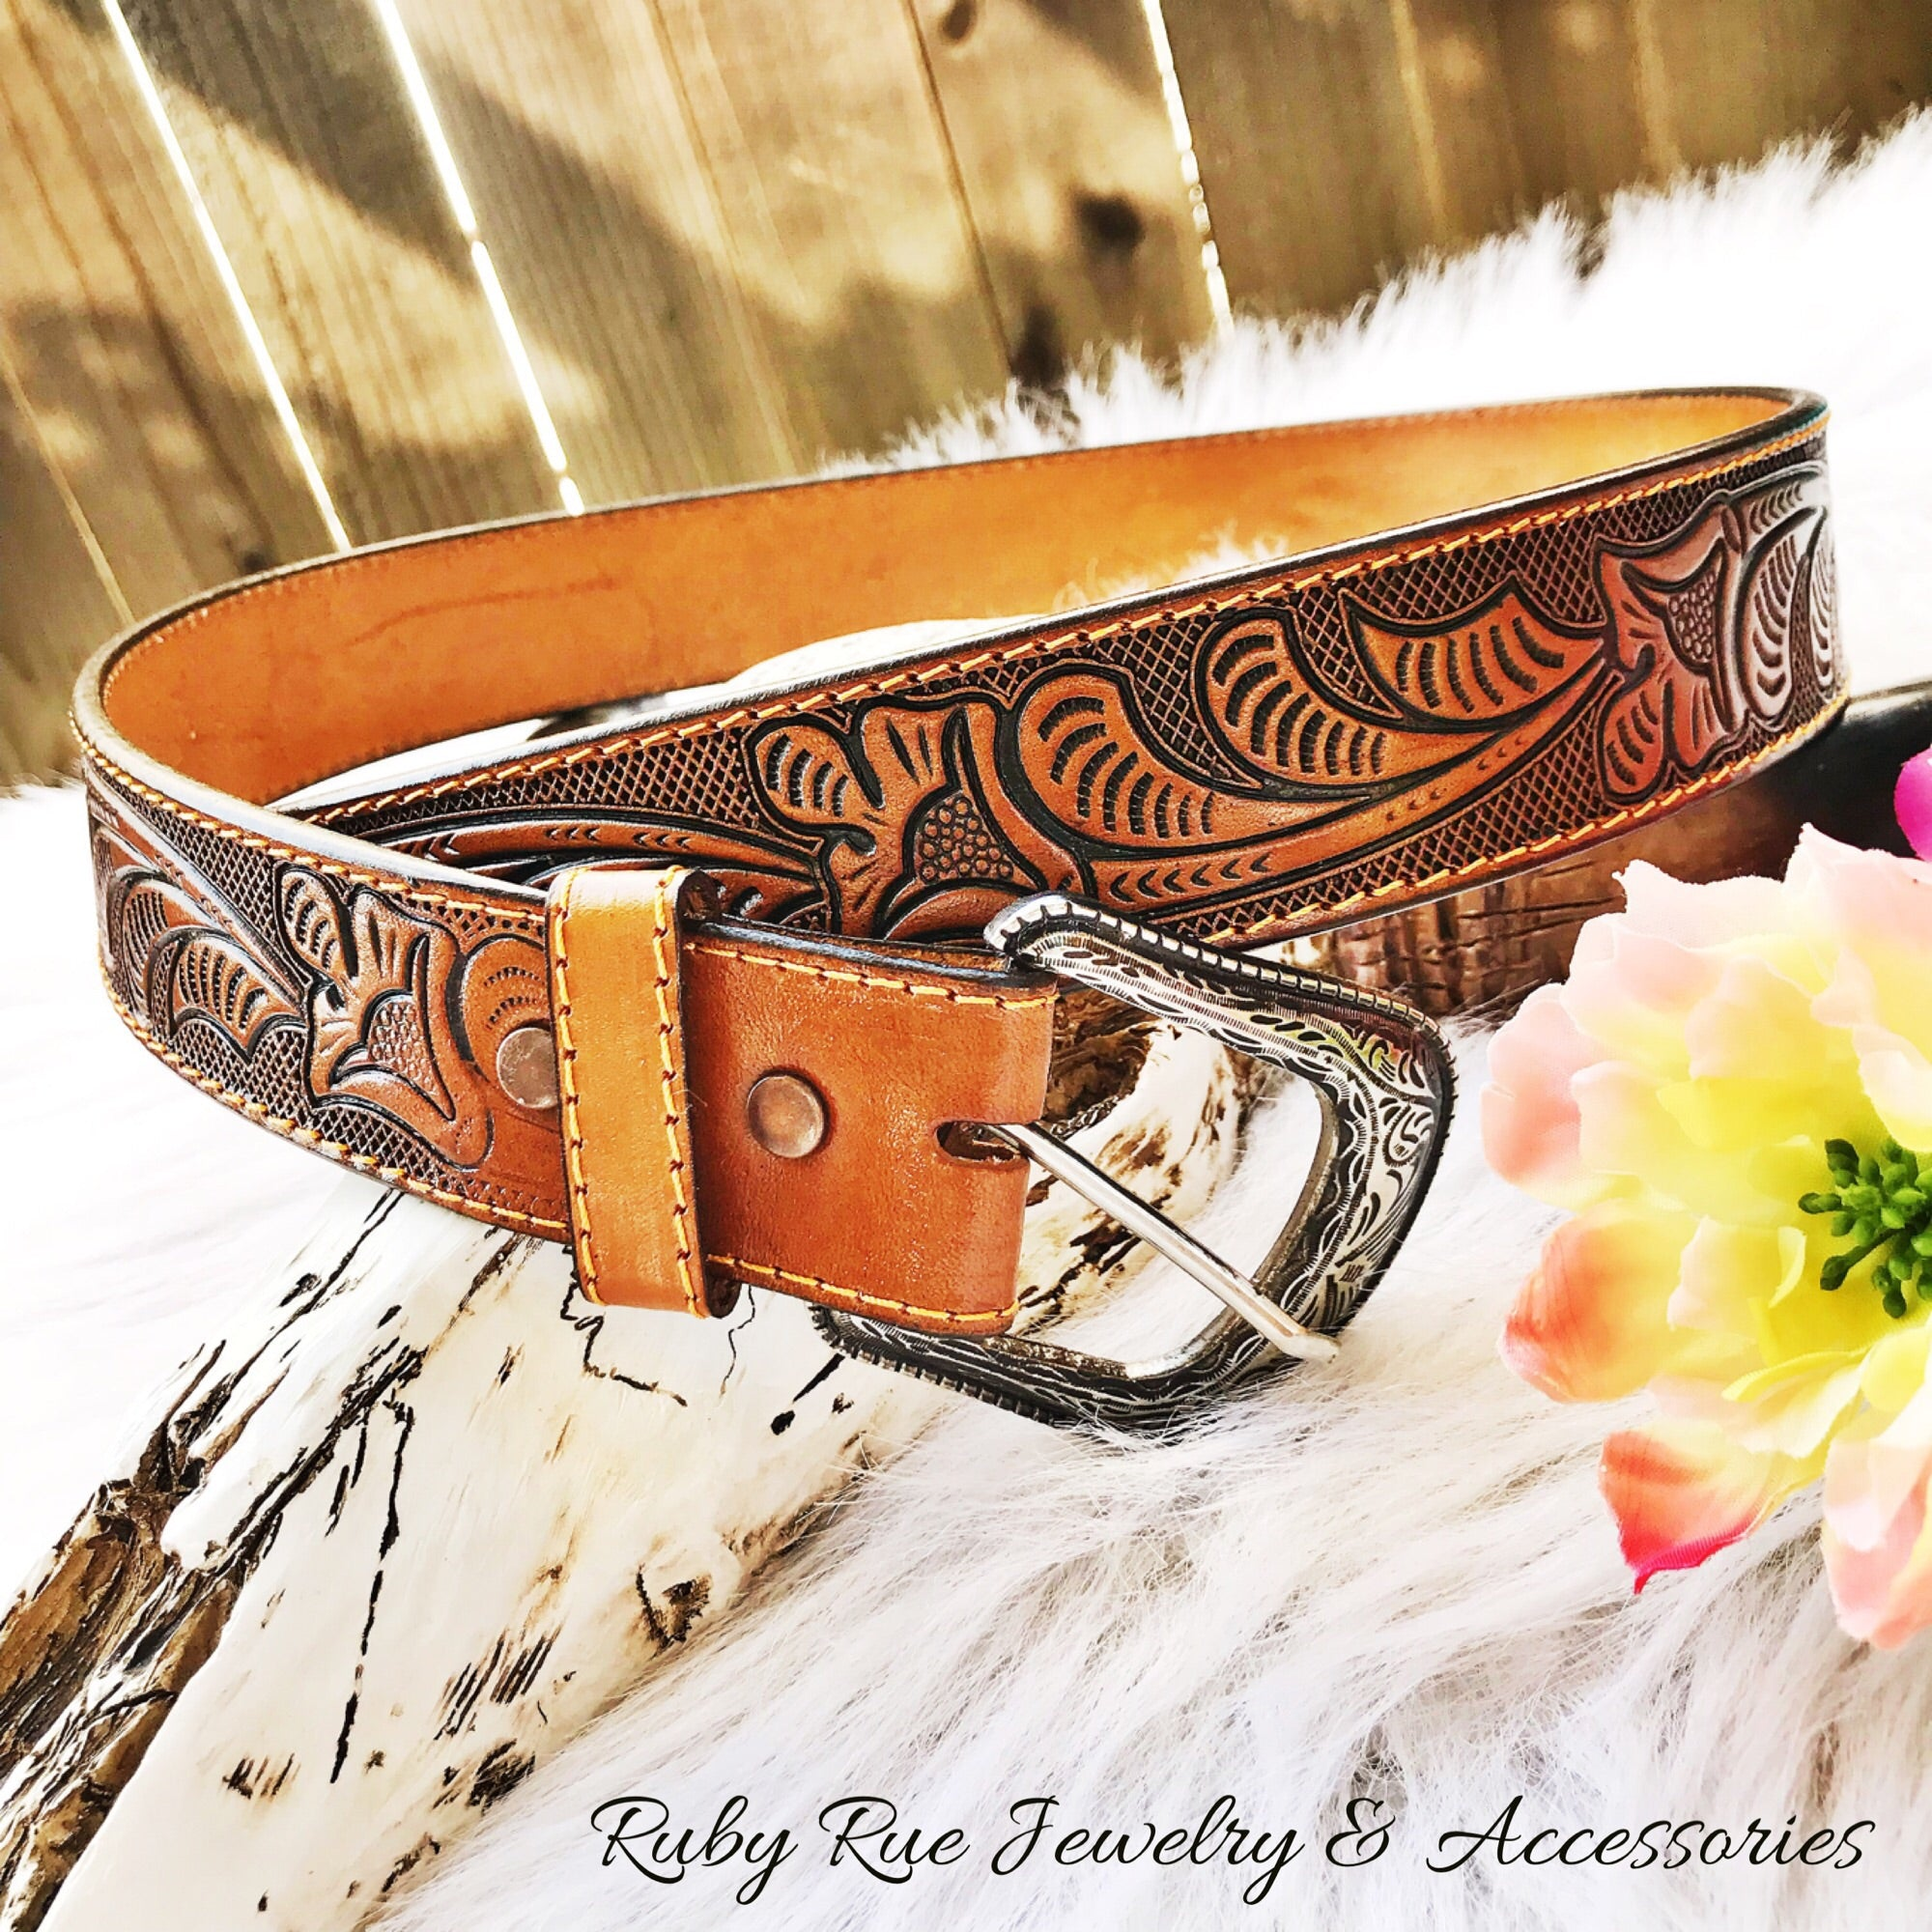 The Bailey Leather Tooled Belt - Ruby Rue Jewelry & Accessories